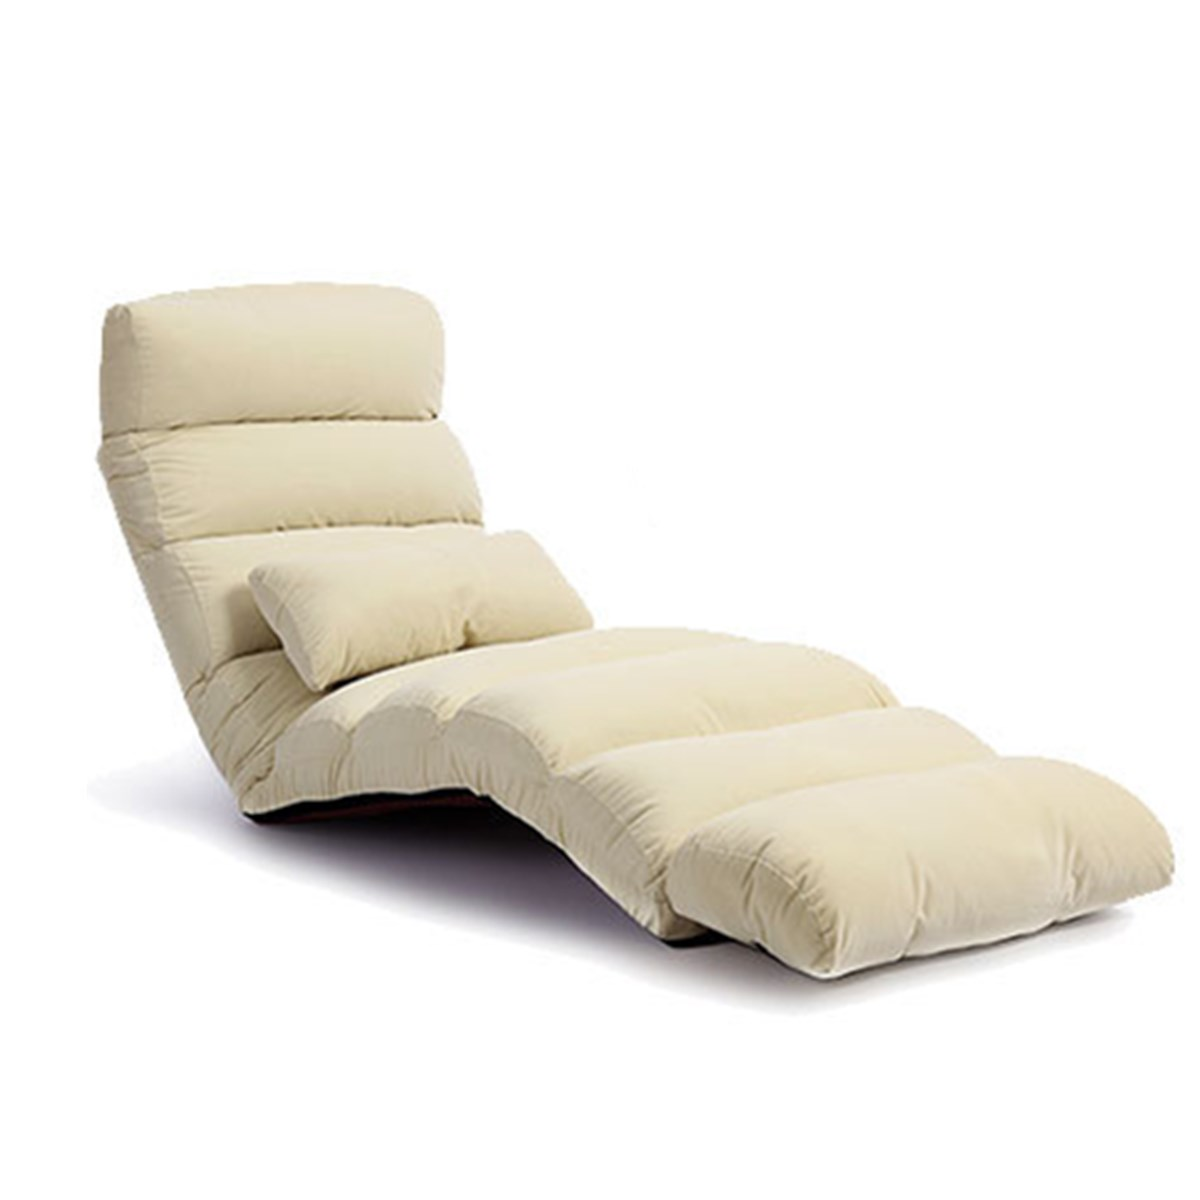 portable sofa chair bad back adjustable 3 folding lazy bed couch